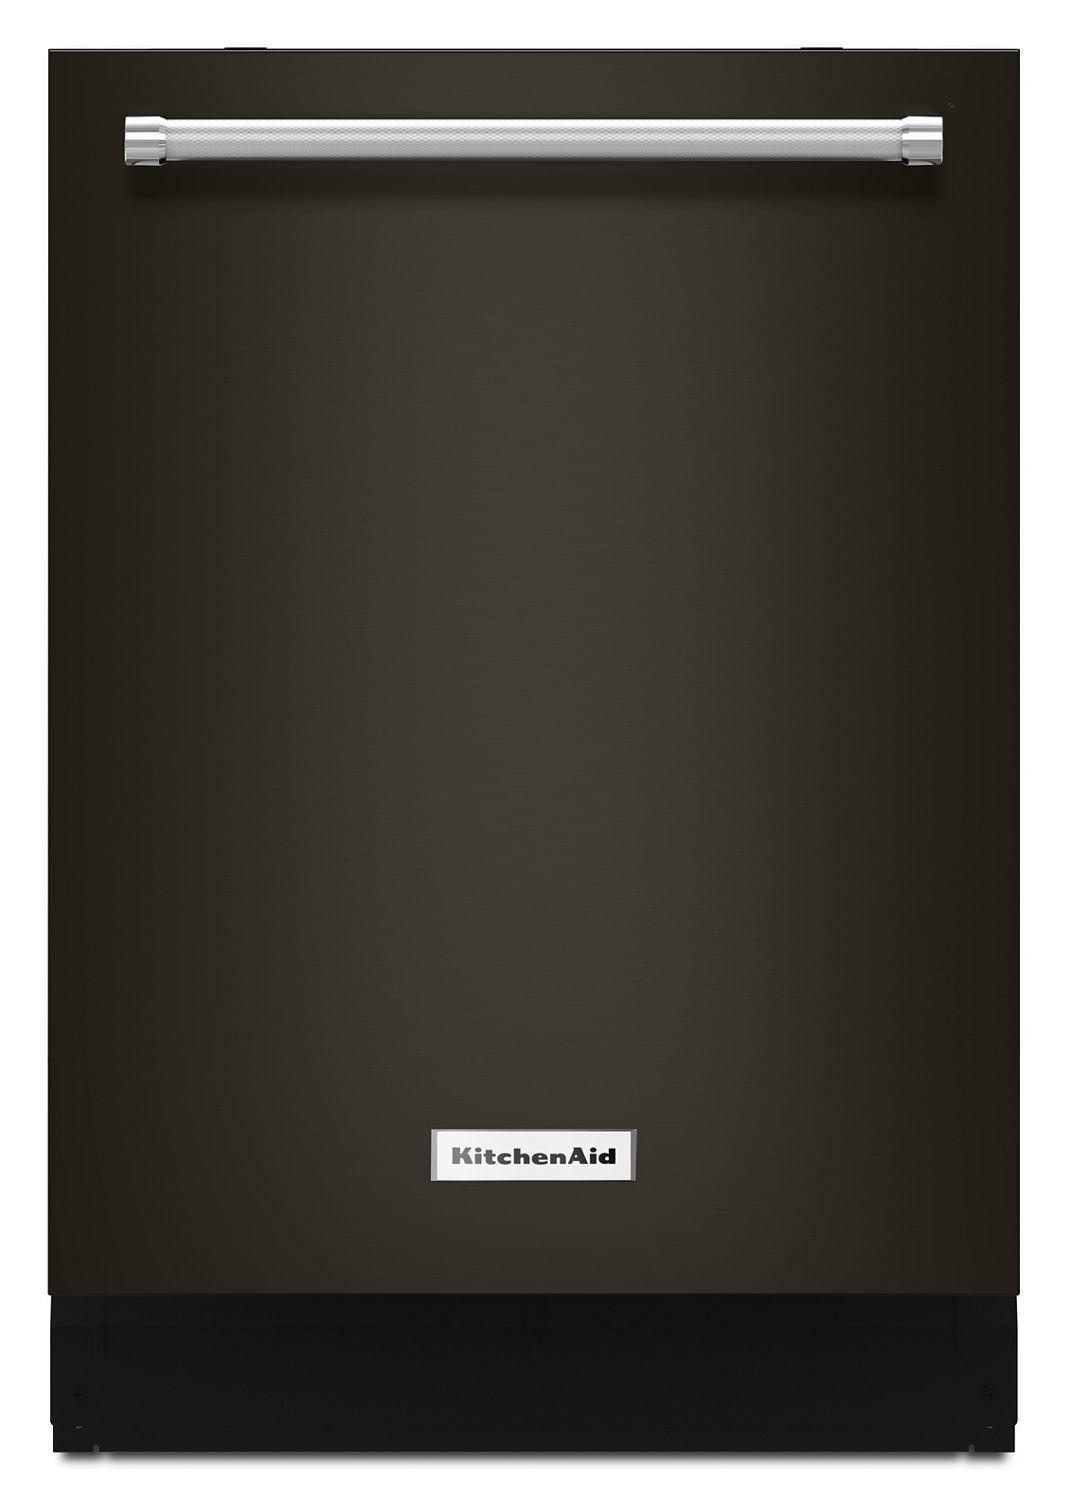 Kitchenaid44 Dba Dishwasher With Clean Water Wash System Black Stainless Steel With Printshield™ Finish